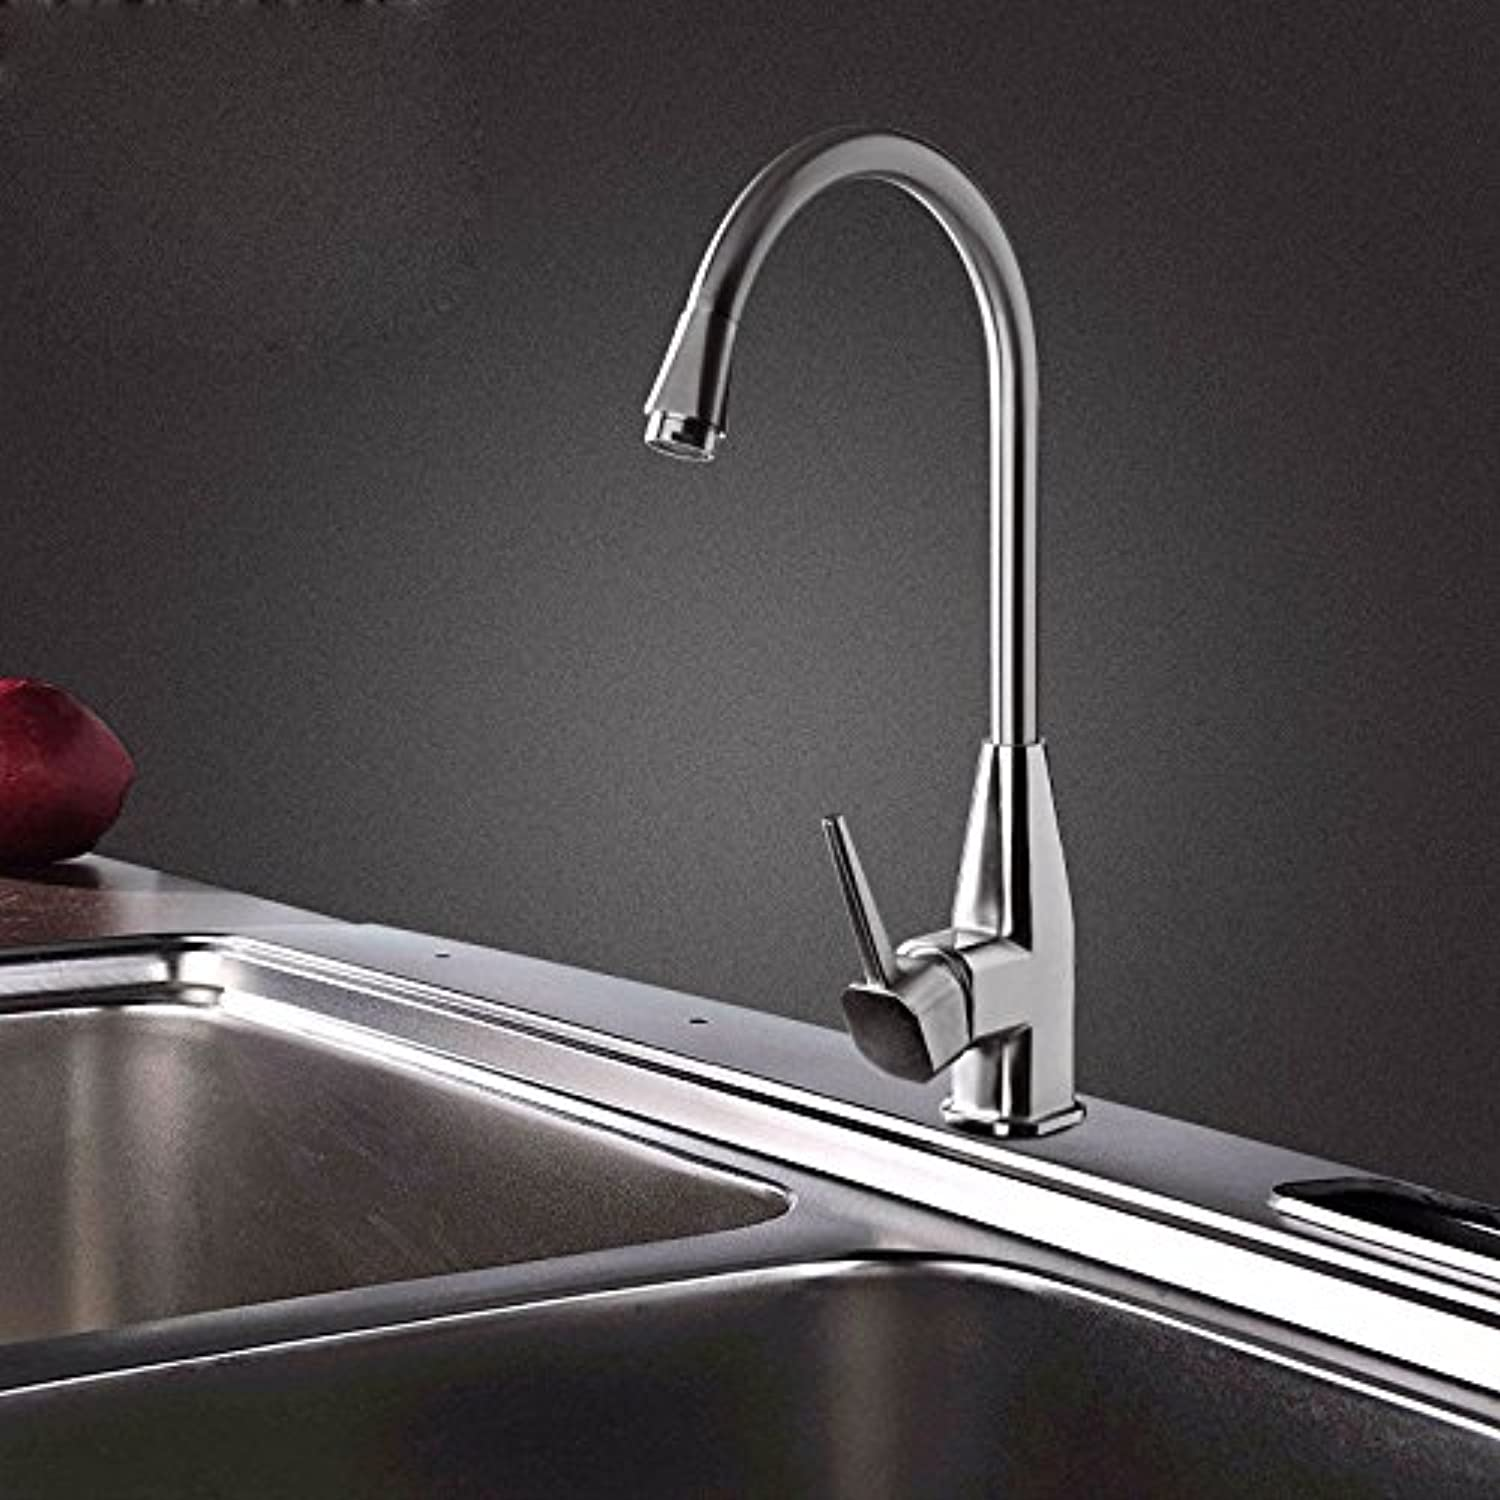 KHSKX-Stainless Steel Elbow Kitchen Tap Water Lead-Free Hot And Cold Shower Swivel Adjustable Warm Tower Cuisine Basin Faucet